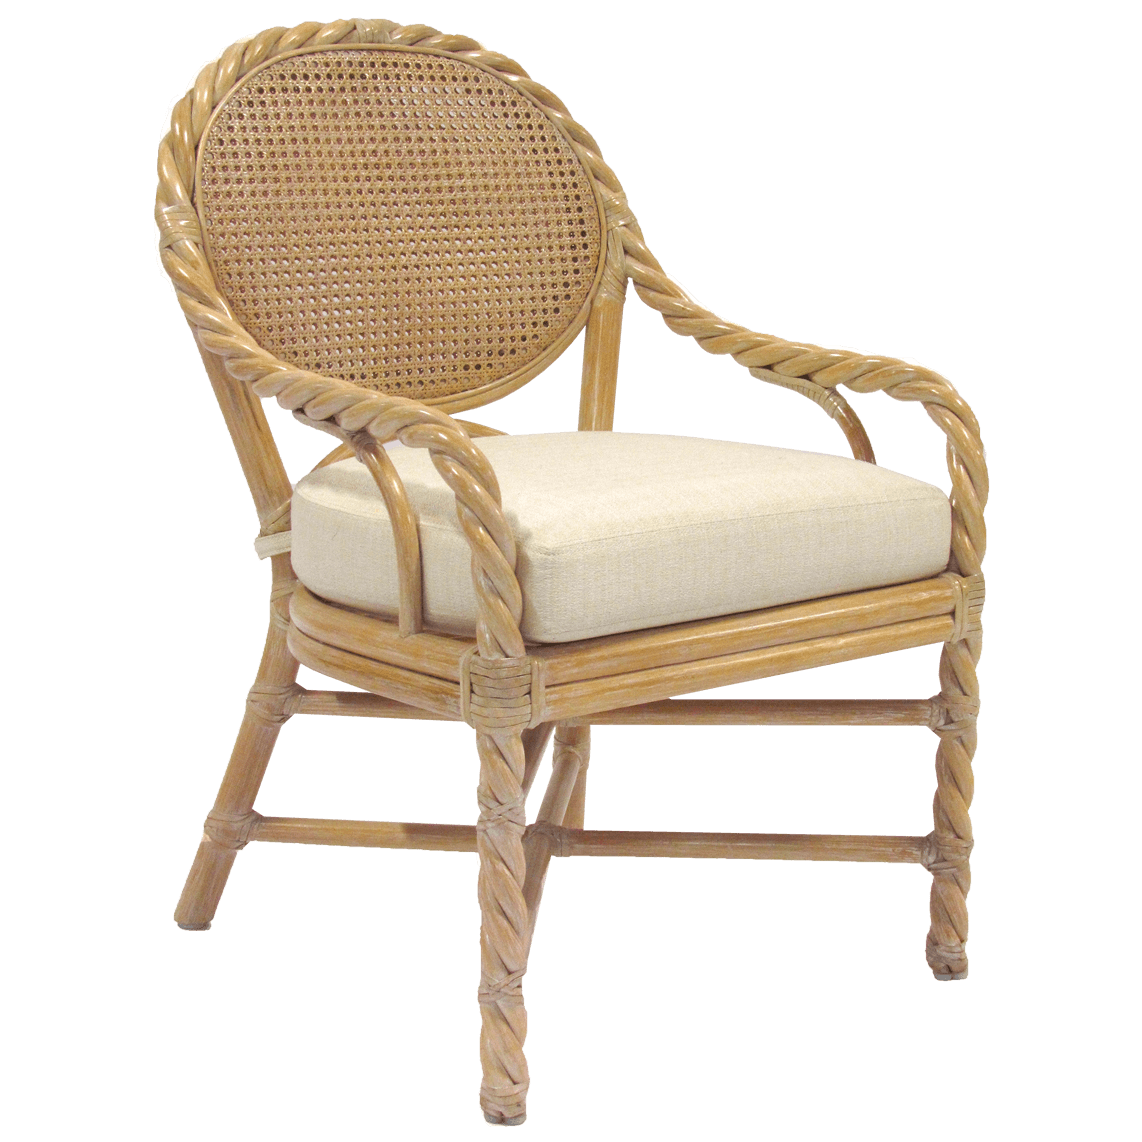 Twisted Rattan Arm Chair